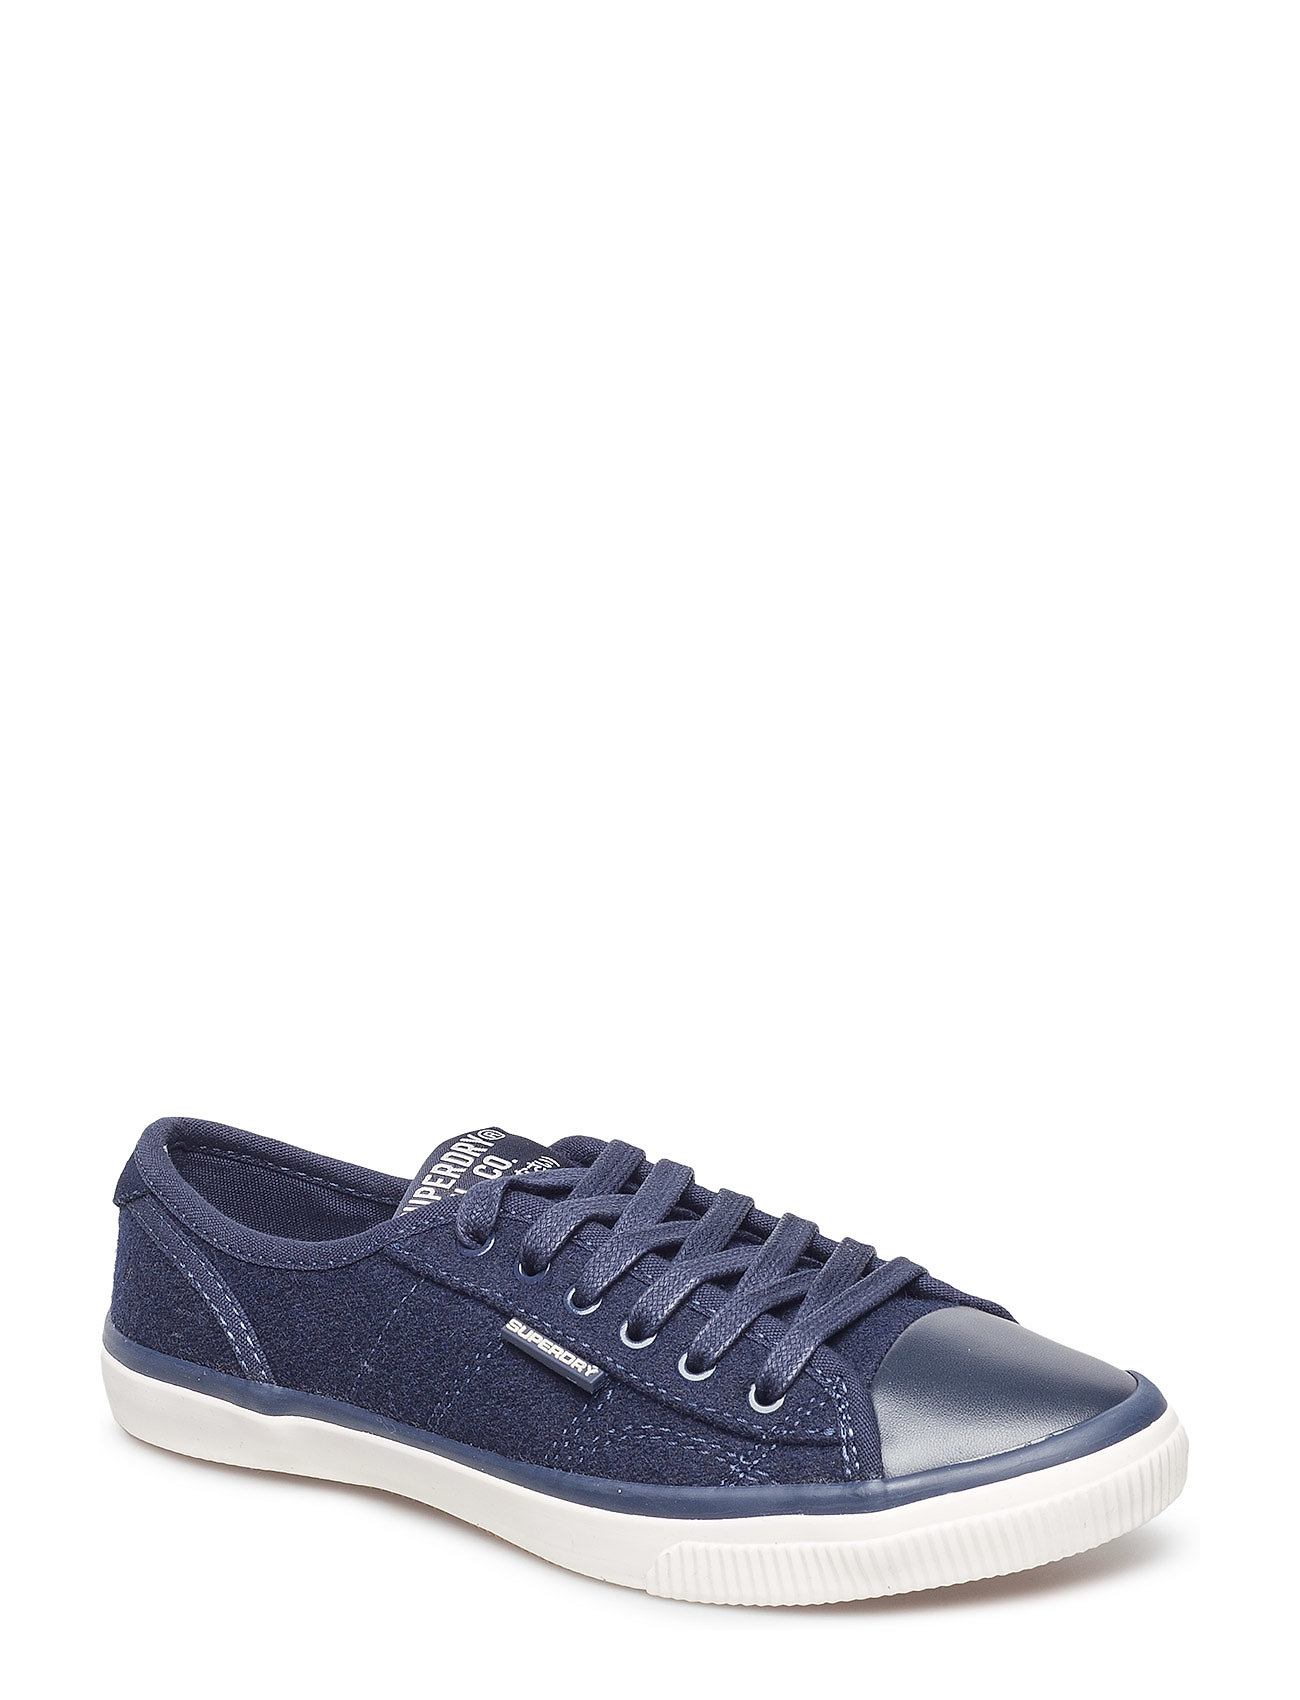 Image of Low Pro Luxe Low-top Sneakers Blå Superdry (3413956233)